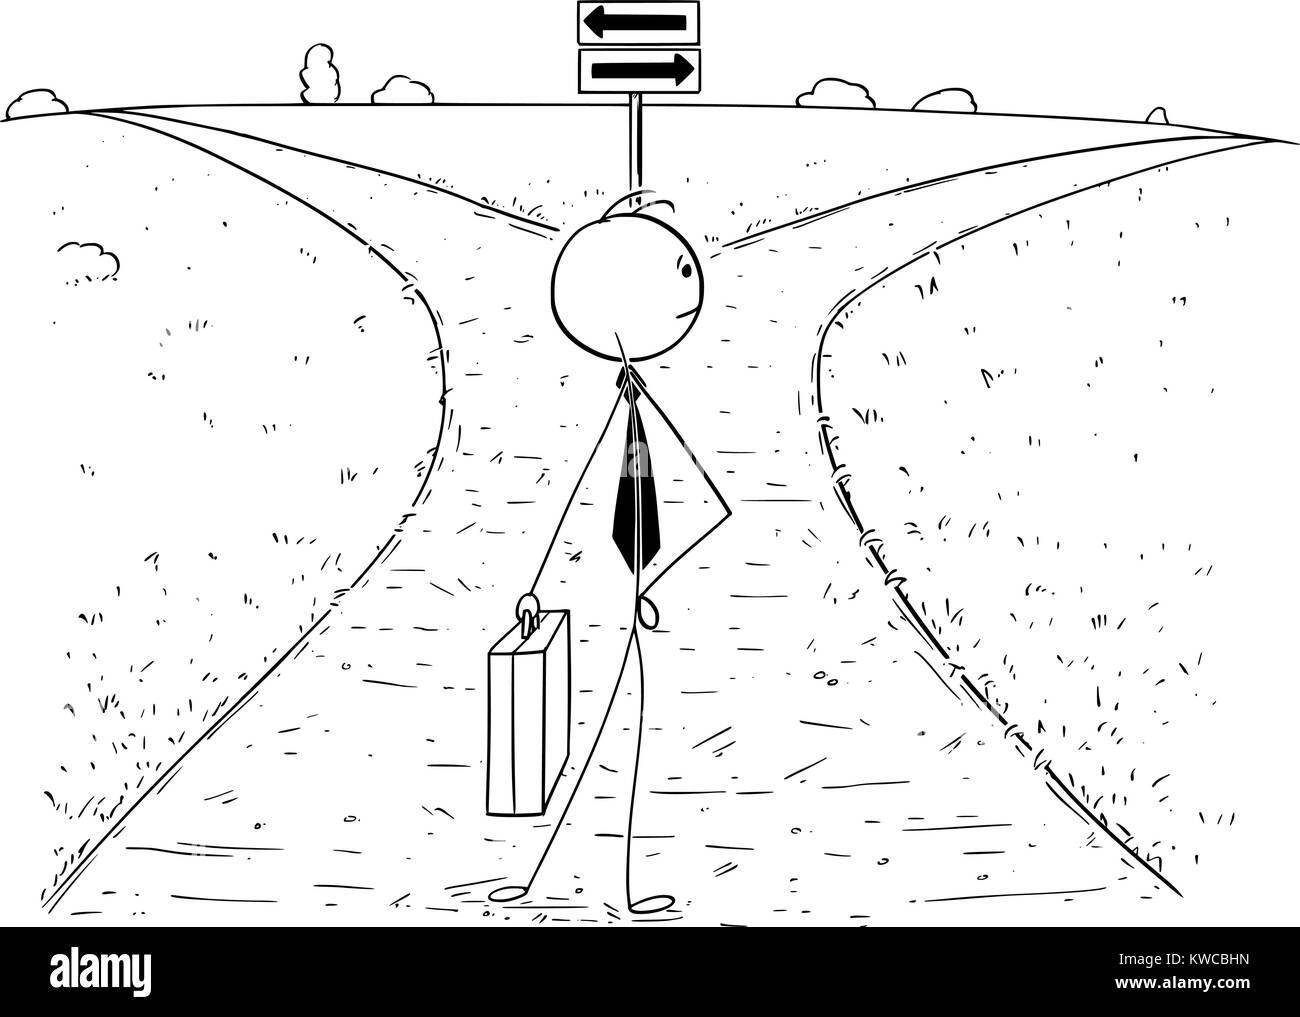 Cartoon stick man drawing illustration of businessman standing on the crossroad and making choice or decision. Concept - Stock Image